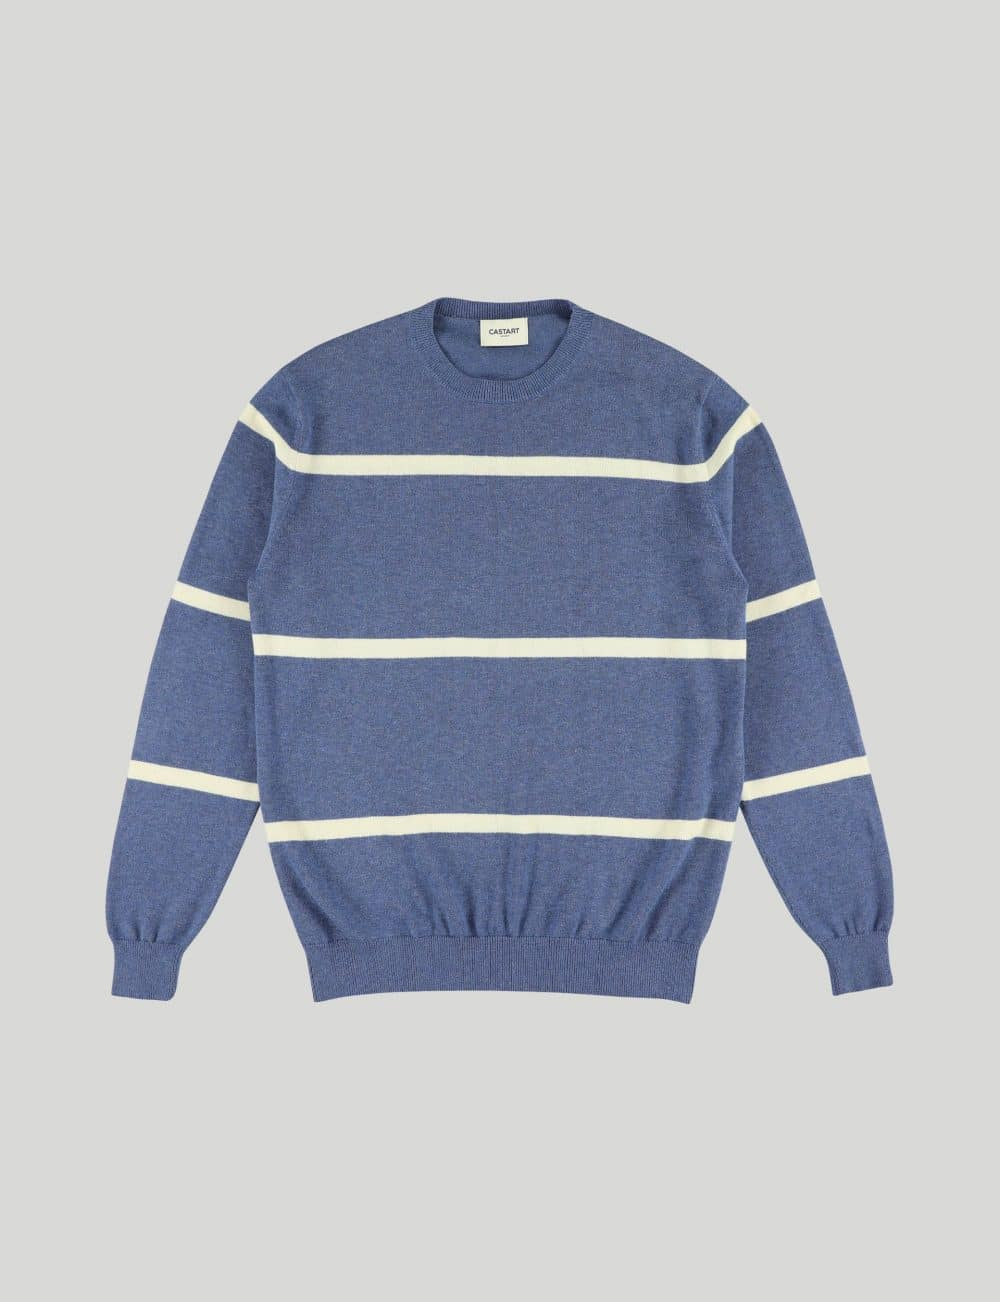 Castart - Pendine knitwear - French Blue